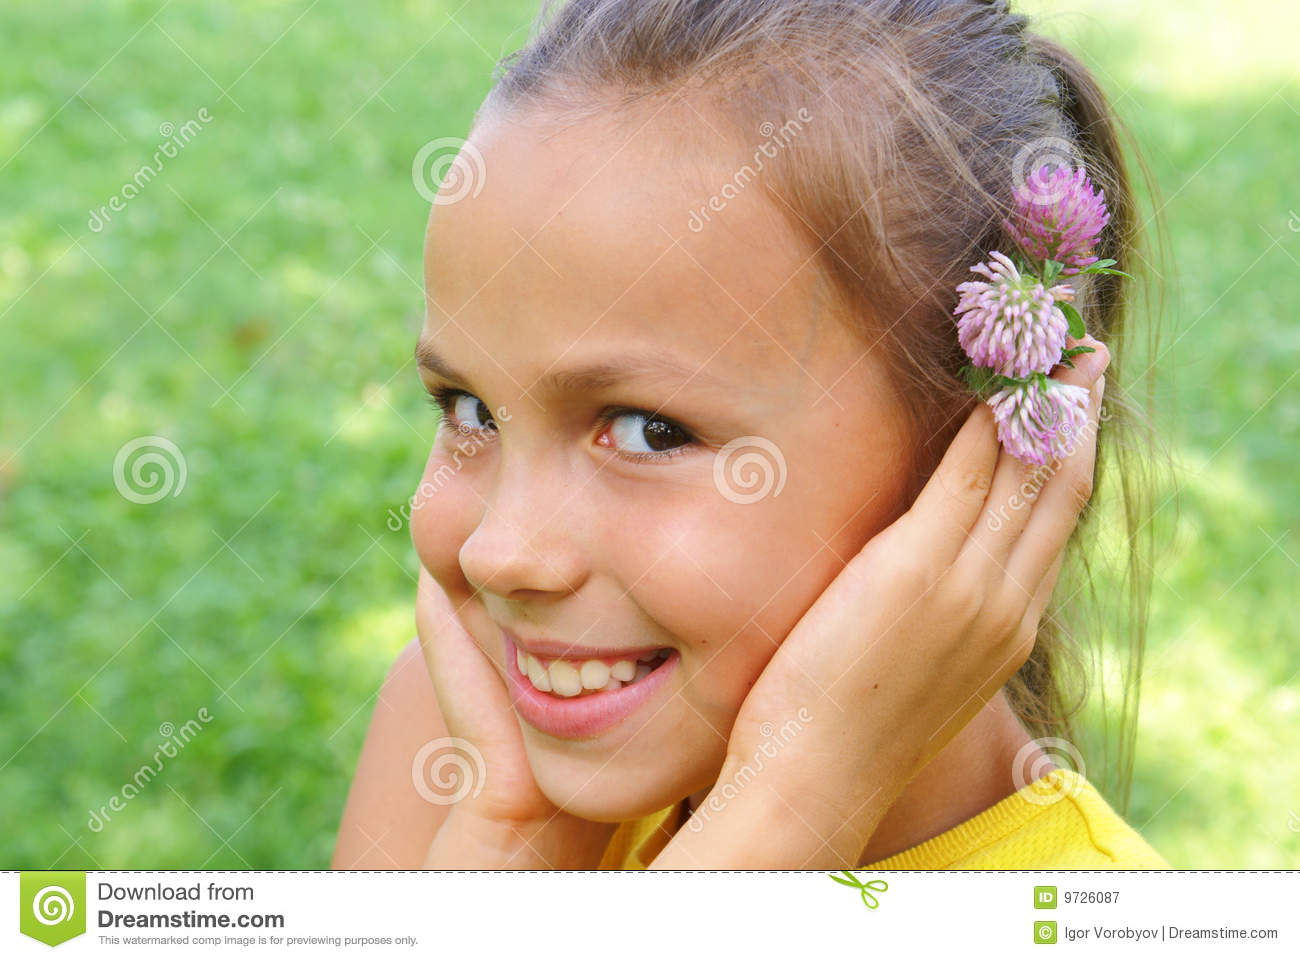 Preteen girl with clover flower